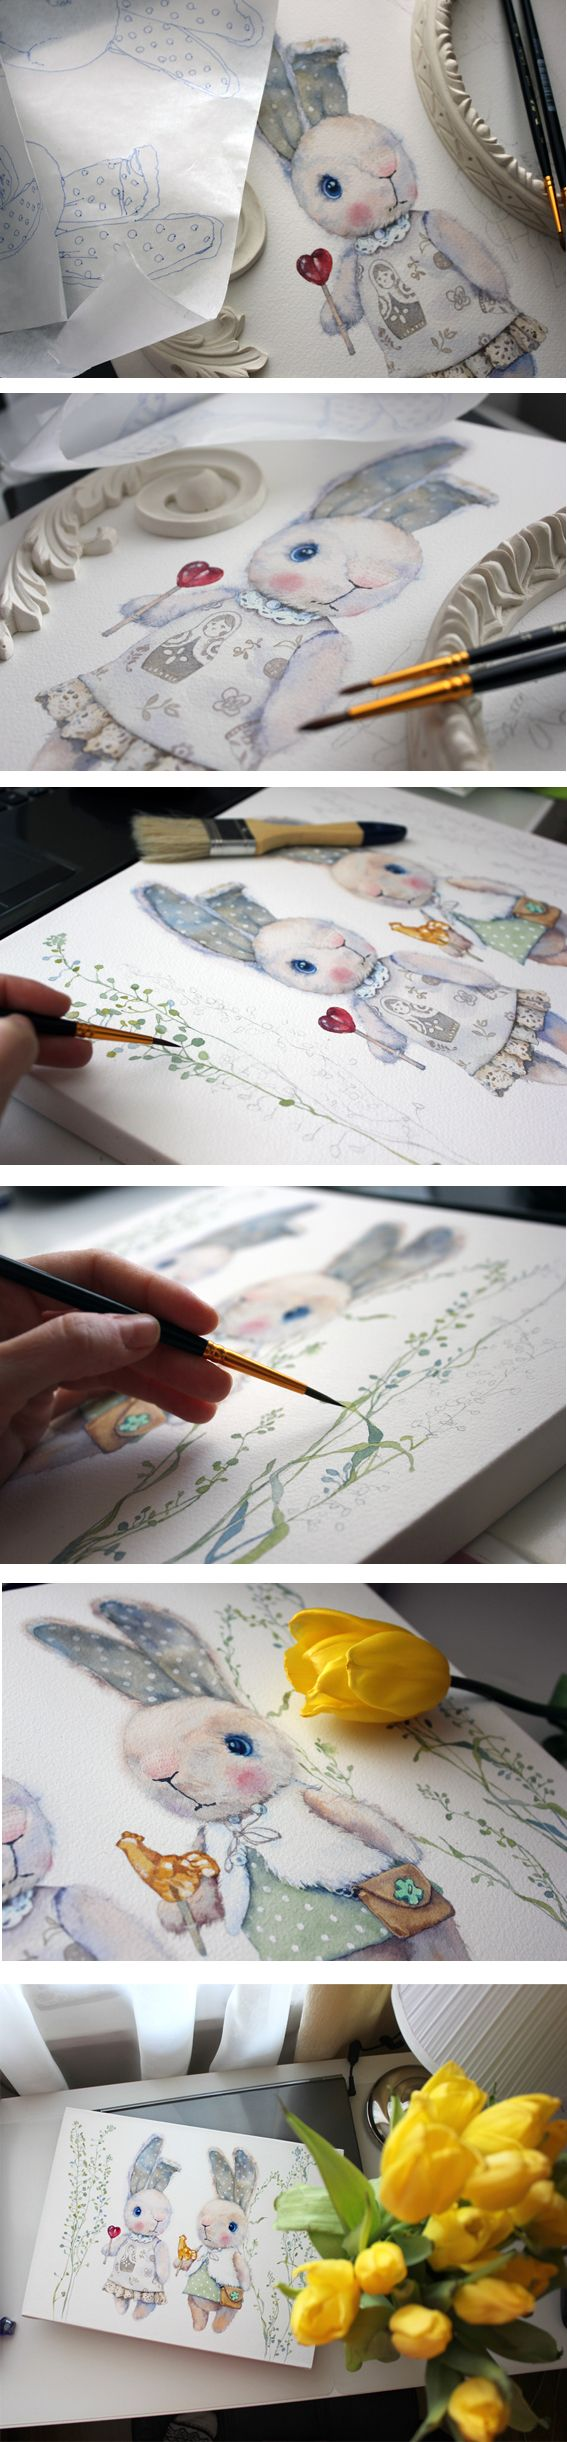 Watercolor rabbits on Behance                              …